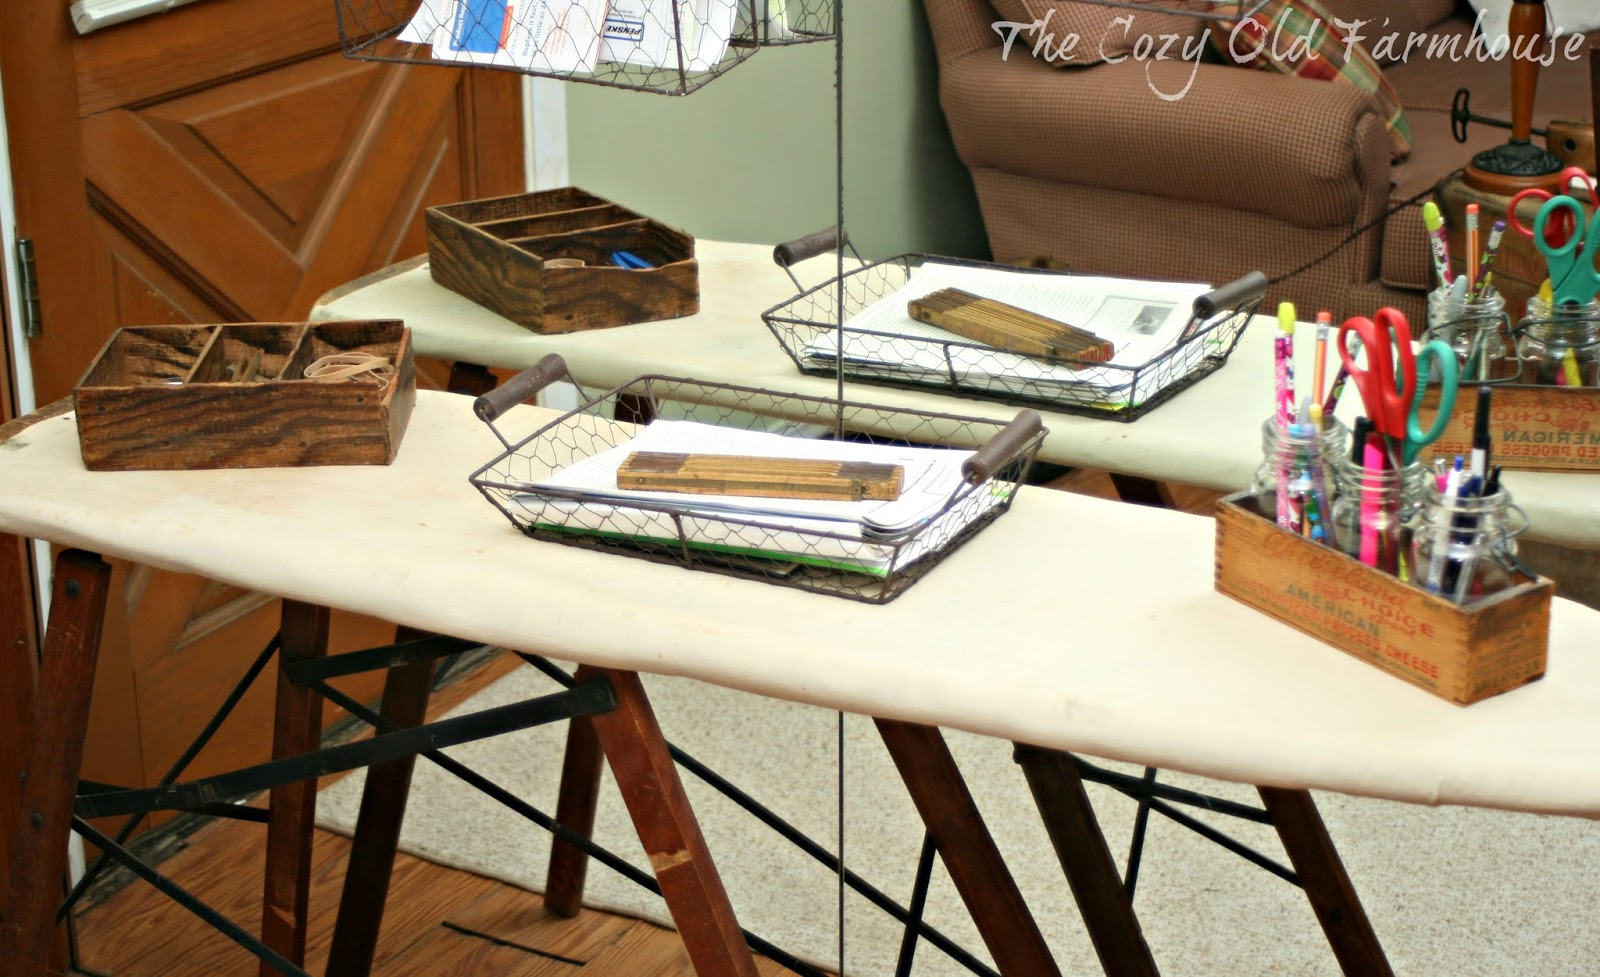 The Cozy Old Quot Farmhouse Quot Repurposed Ironing Board Quot Desk Quot